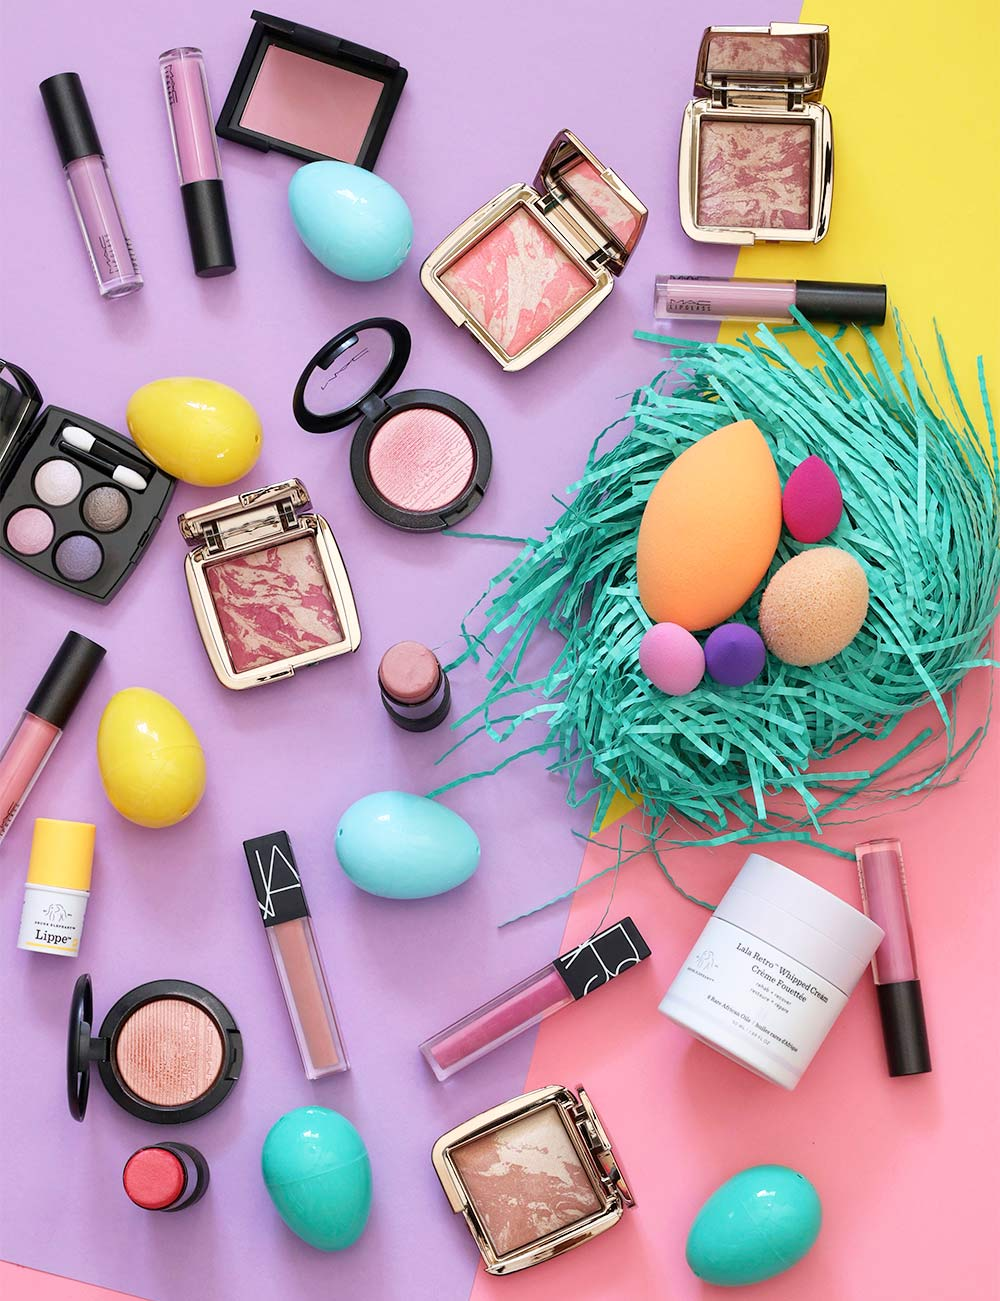 saturday surfing easter eggs makeup